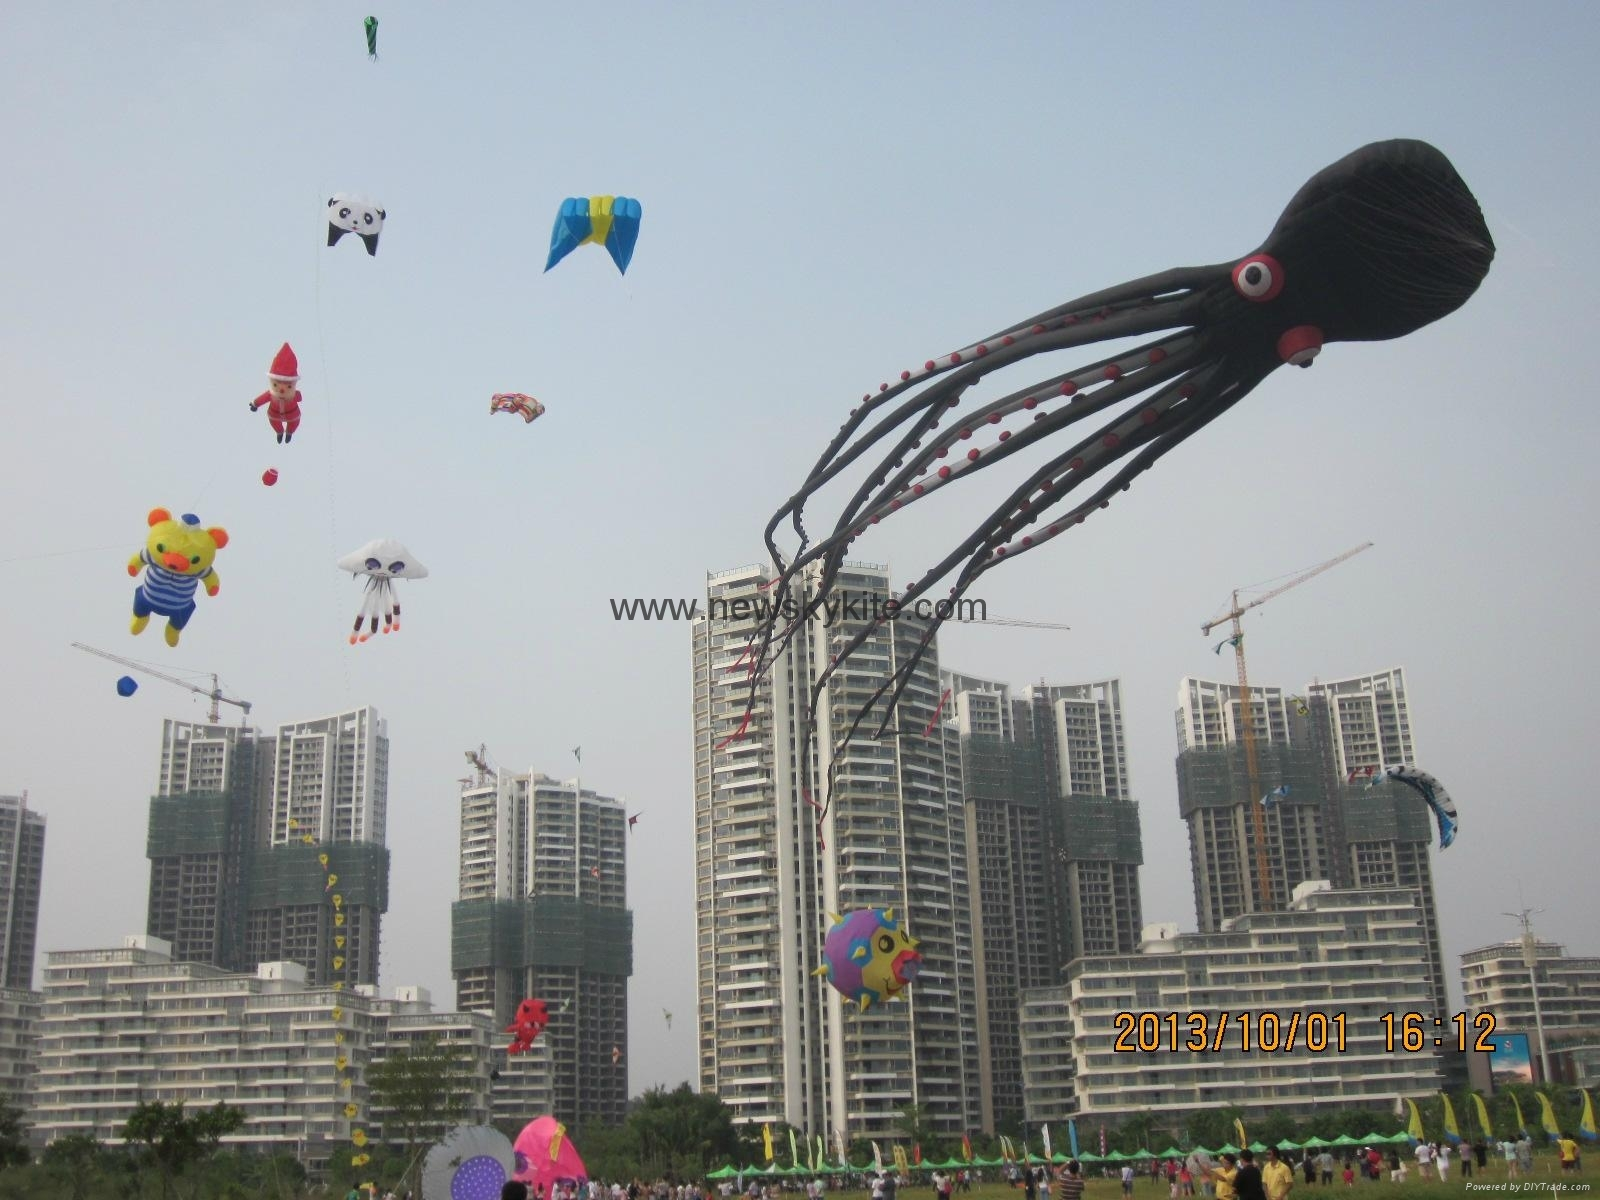 Biggest kite (100M long octopus) in 2013 WF kite festival